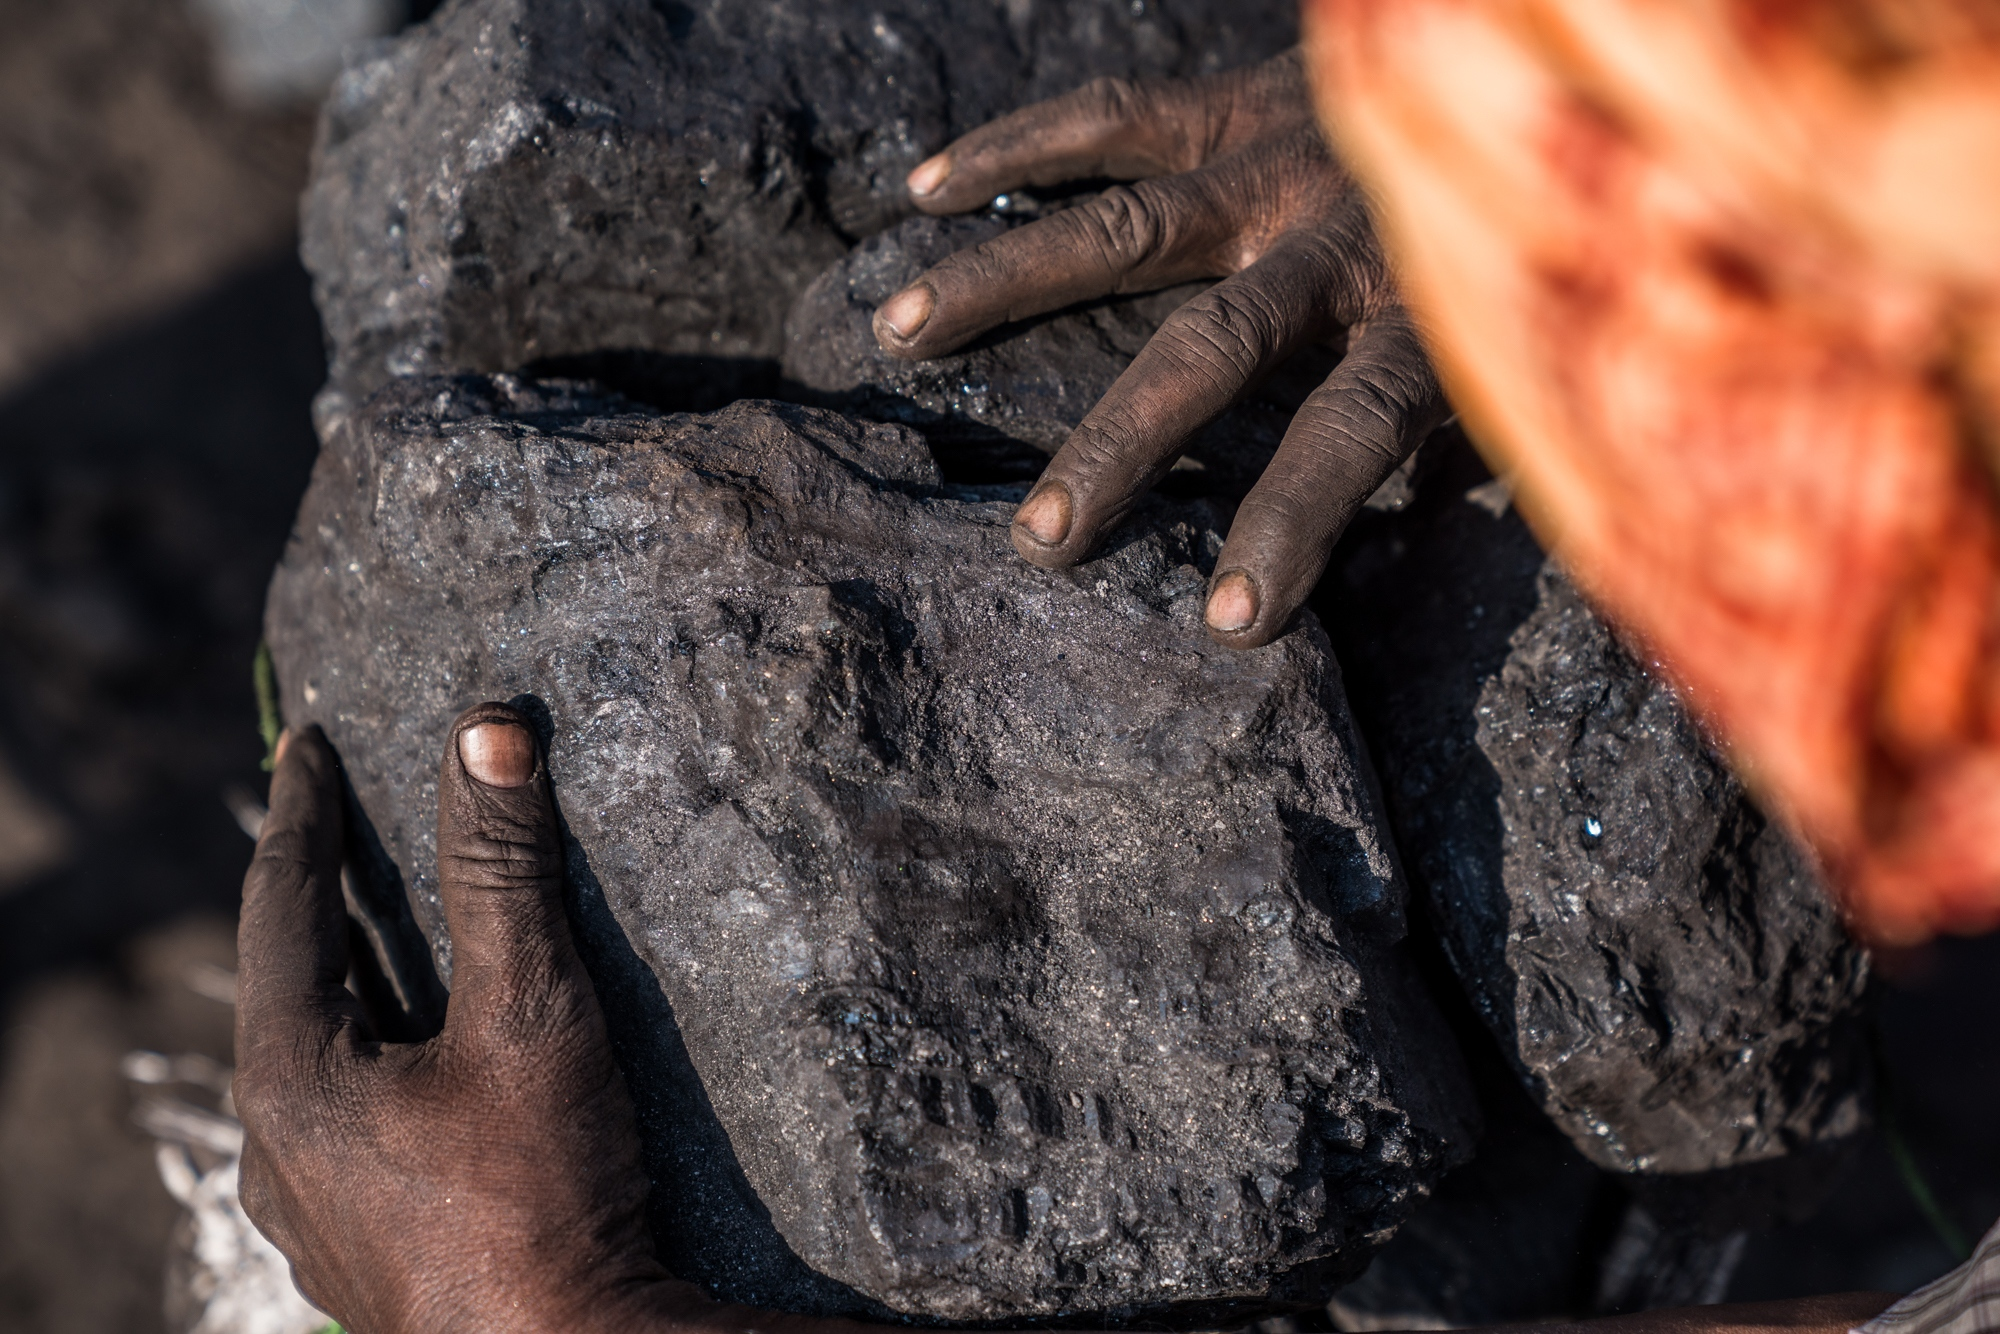 A coal miner making sure the blocks or coal are securely placed inside the stack before it is transported away for sale or personal use.